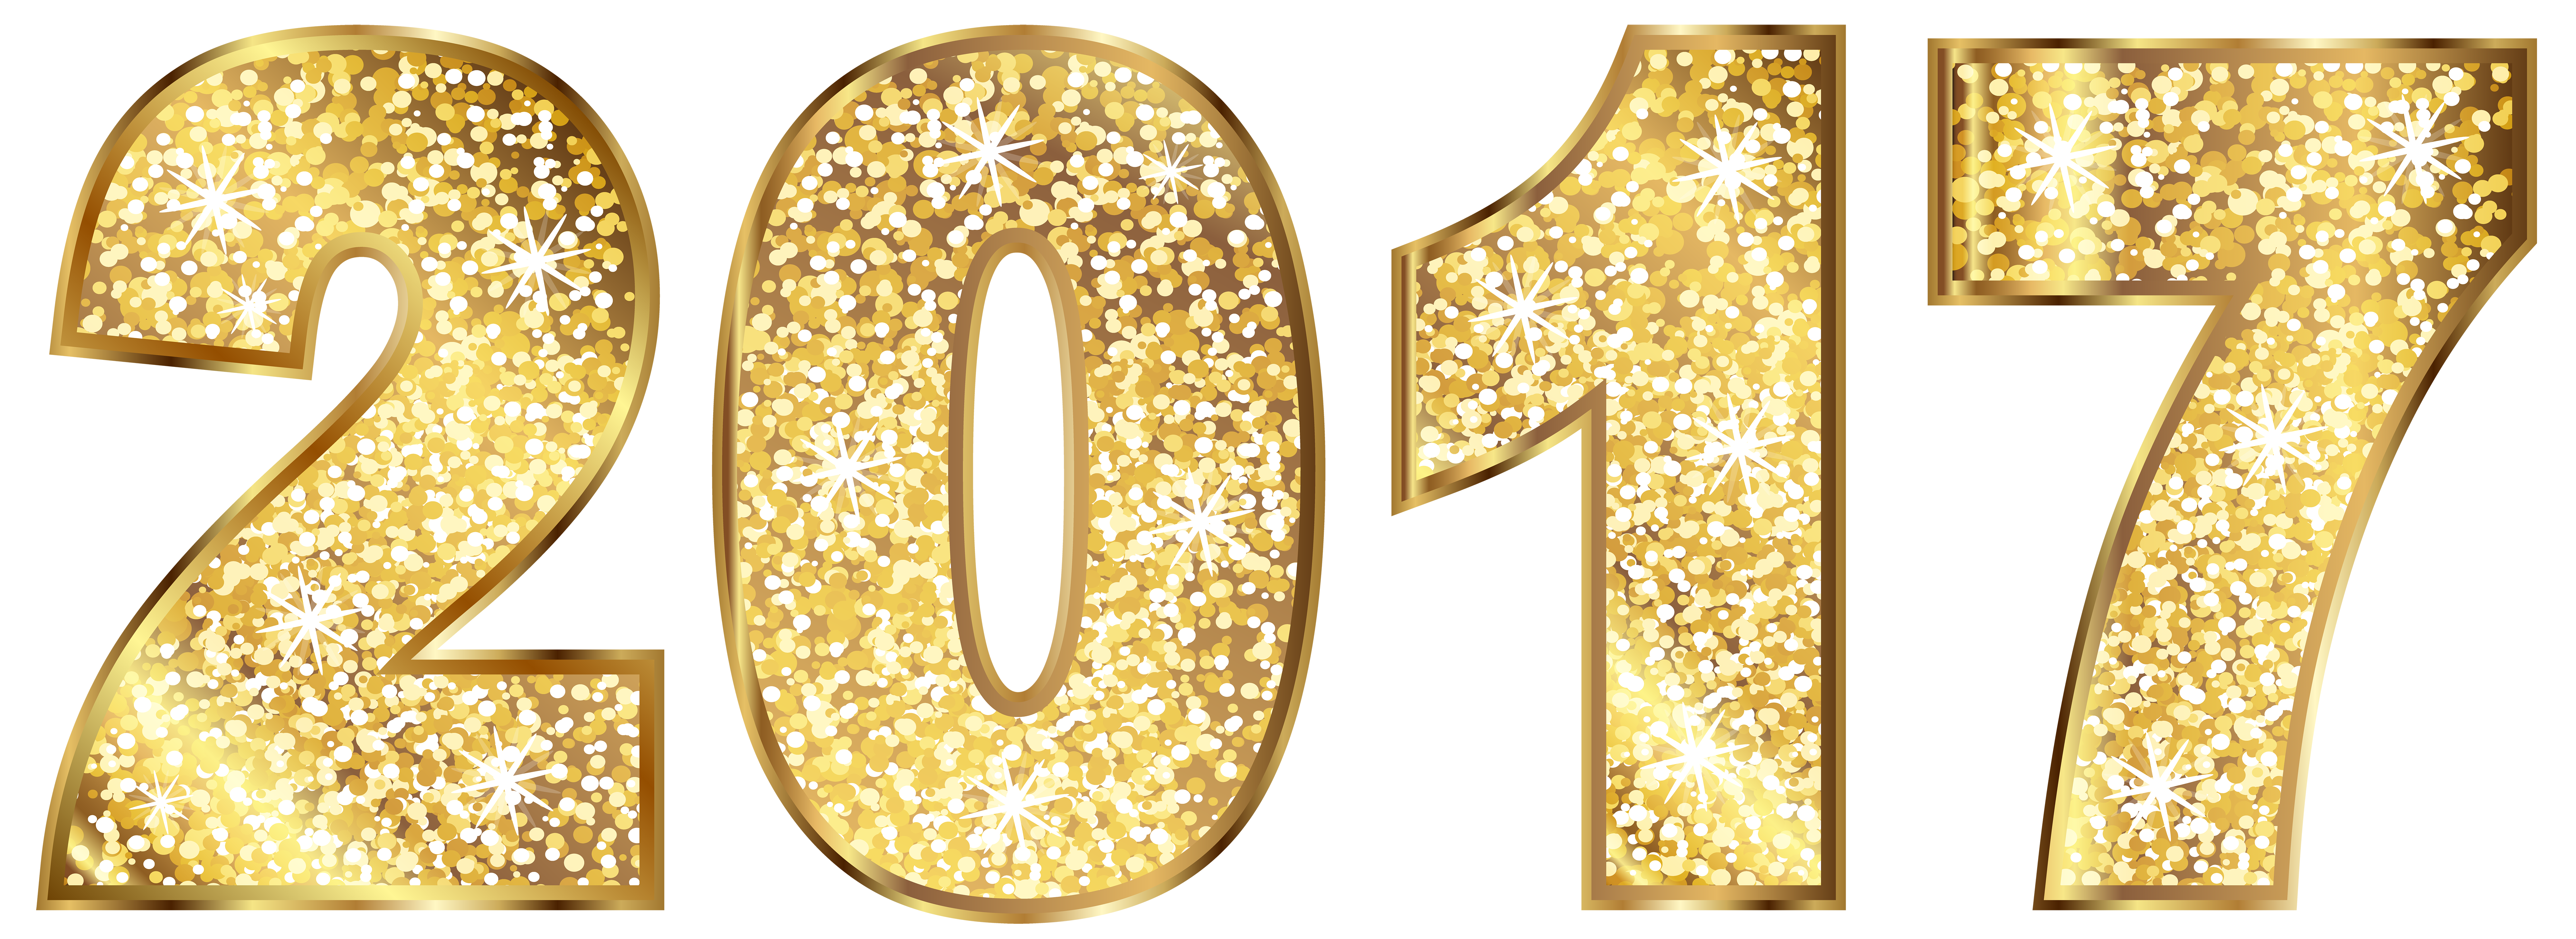 2017 clipart clear background. Gold transparent clip